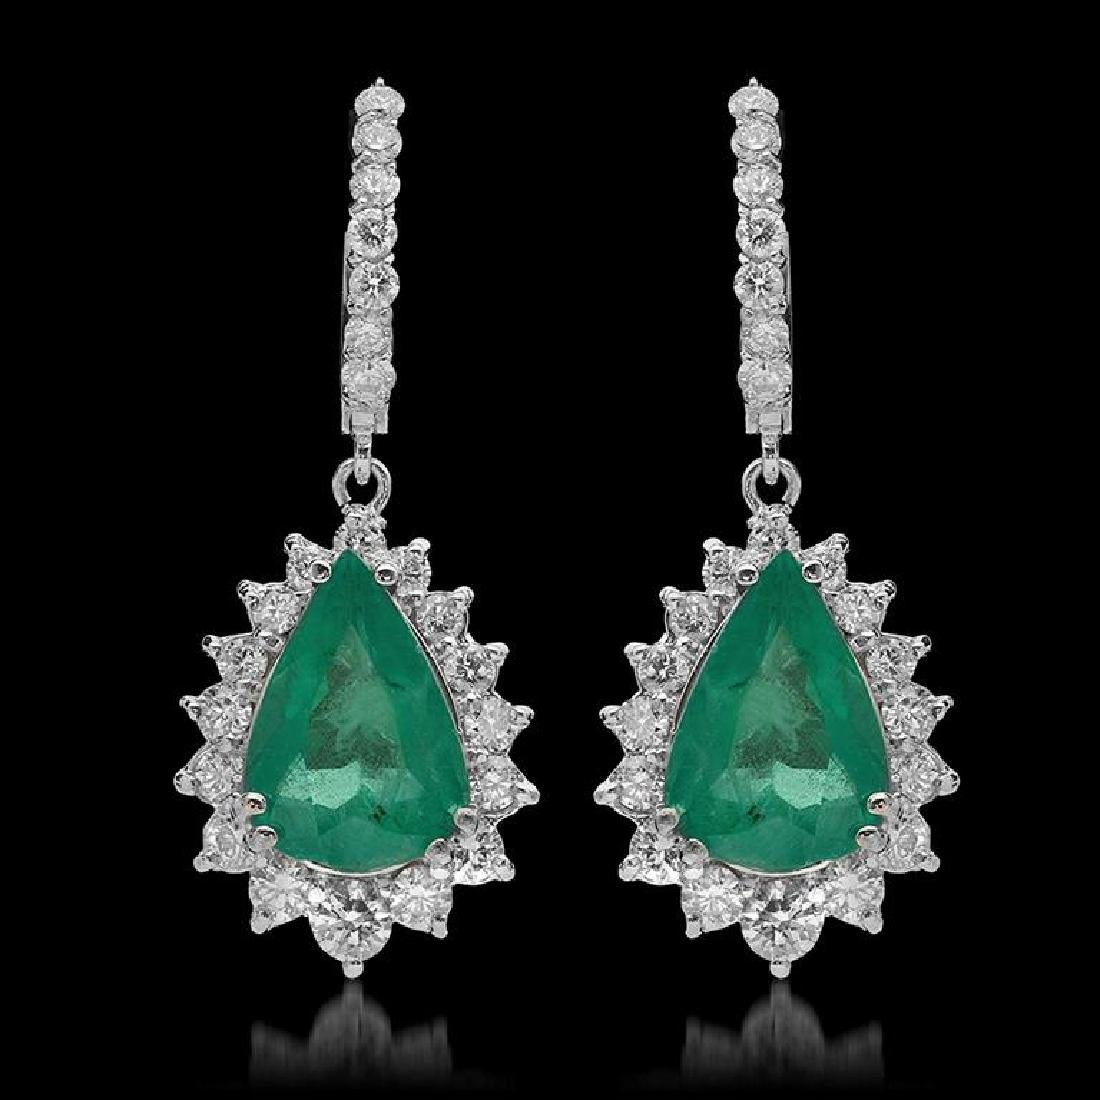 14K Gold 7.24ct Emerald & 2.51ct Diamond Earrings